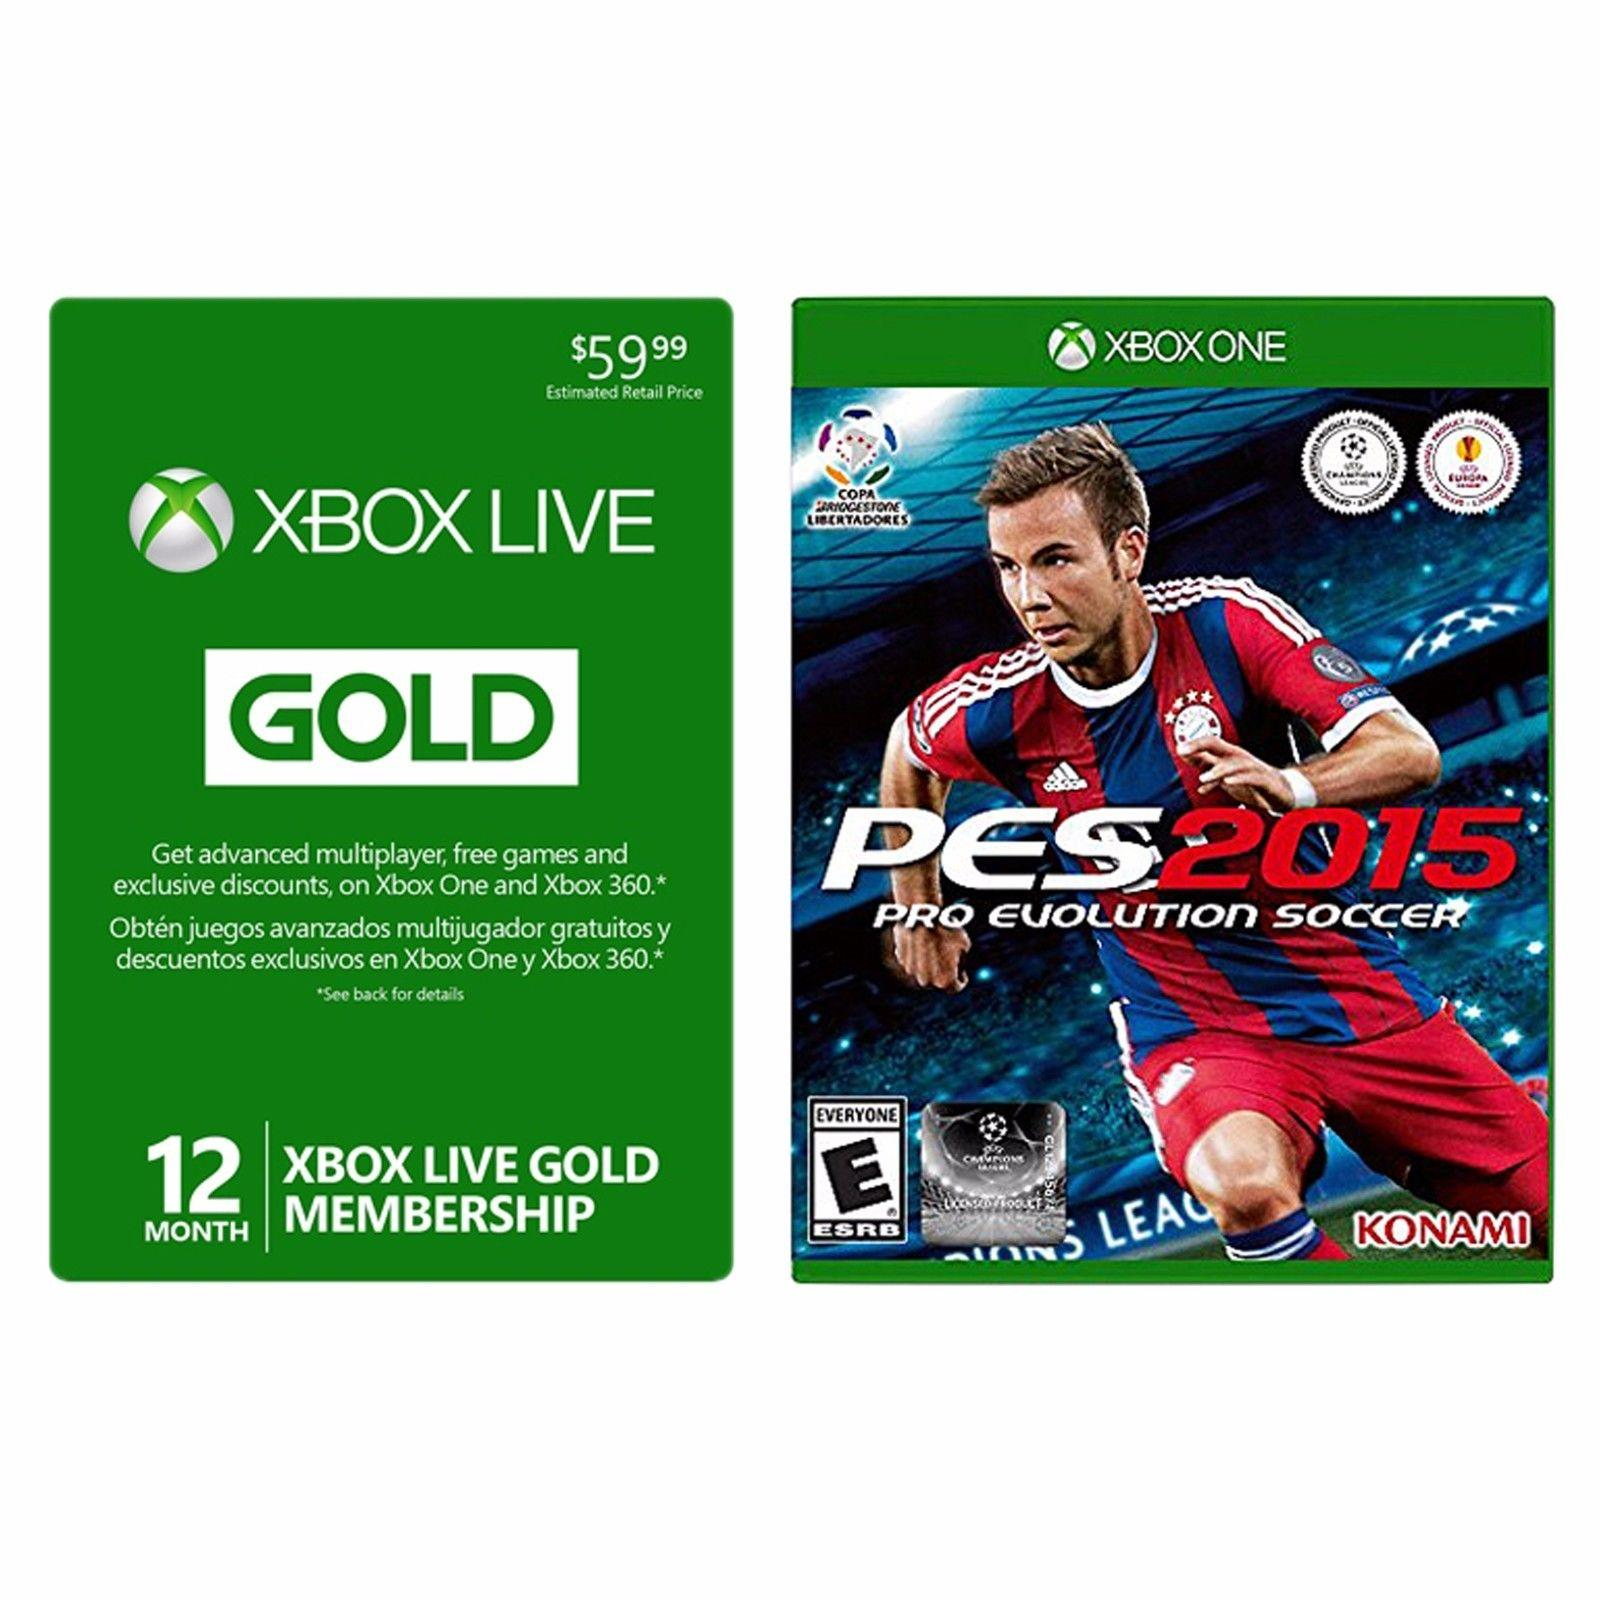 $39.99 Microsoft Xbox LIVE 12 Month Gold Membership Card + Pro Evolution Soccer 2015